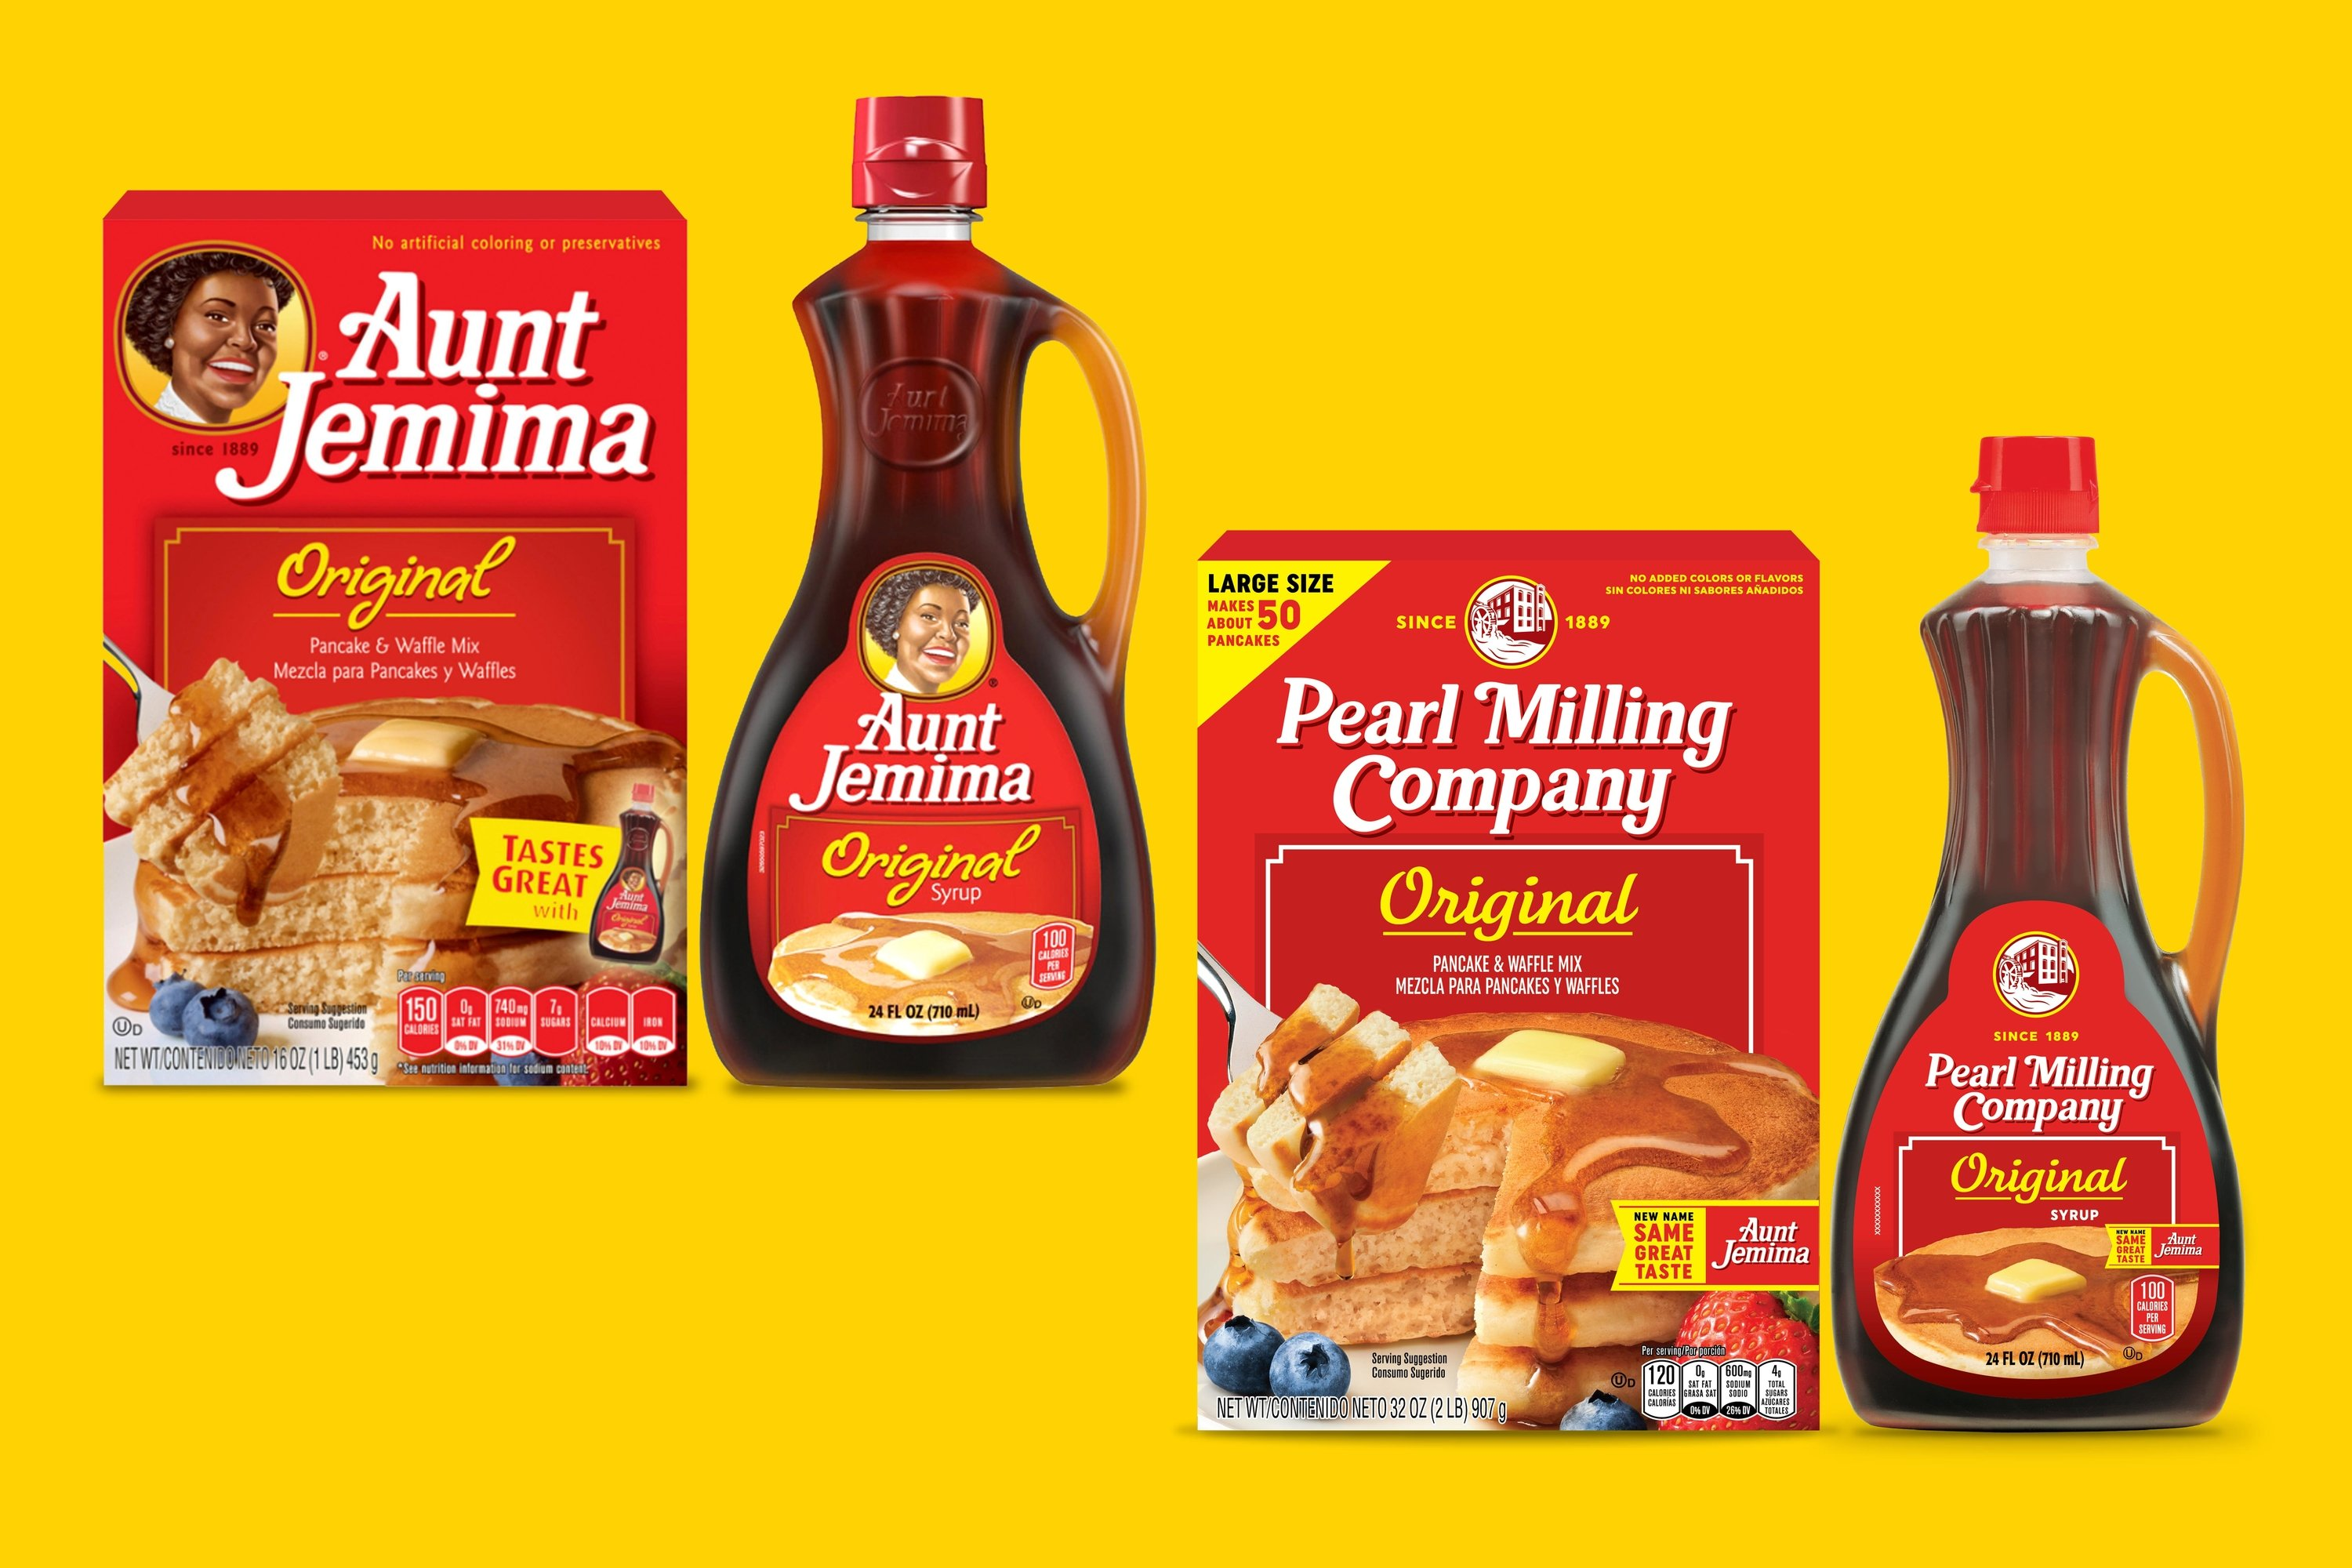 As Aunt Jemima becomes Pearl Milling Company, here's what should happen next